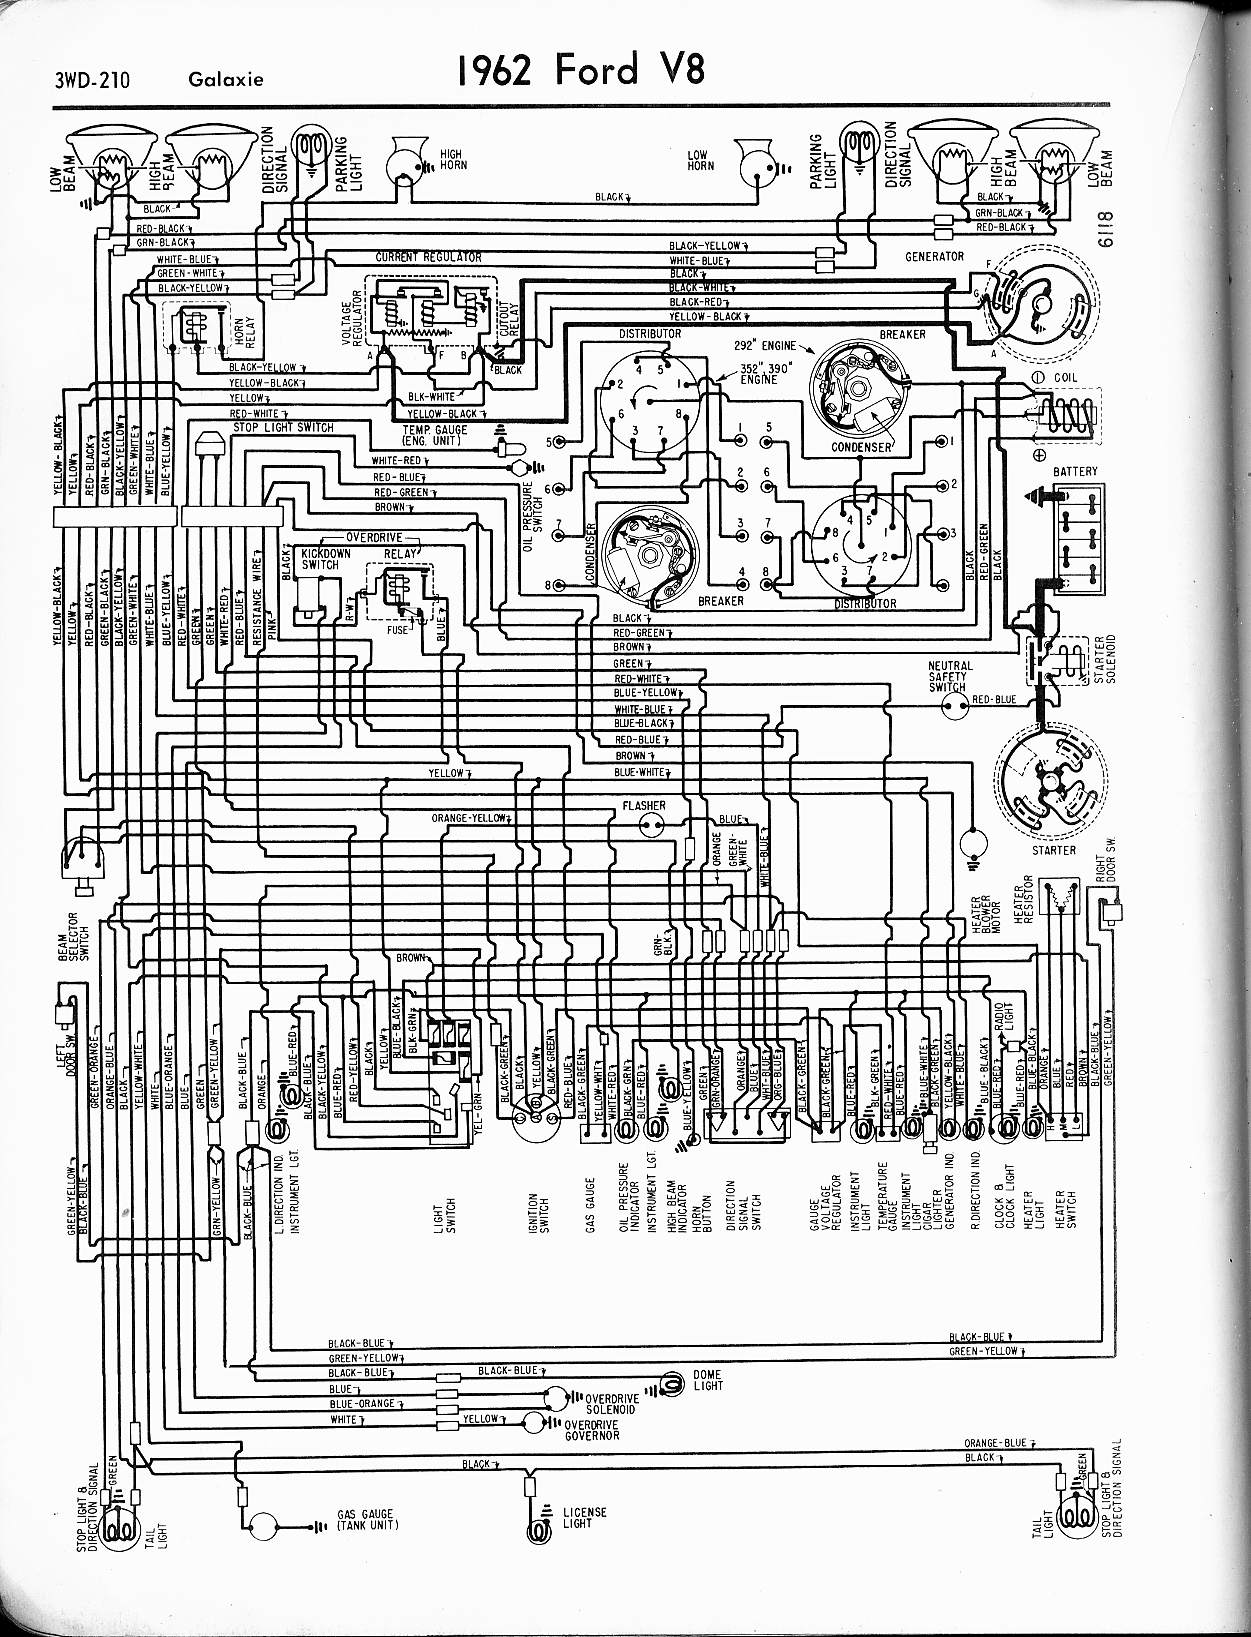 1965 Ford Falcon Wiring Diagram Starting Know About 1985 Mustang Turn Signal 57 65 Diagrams Rh Oldcarmanualproject Com